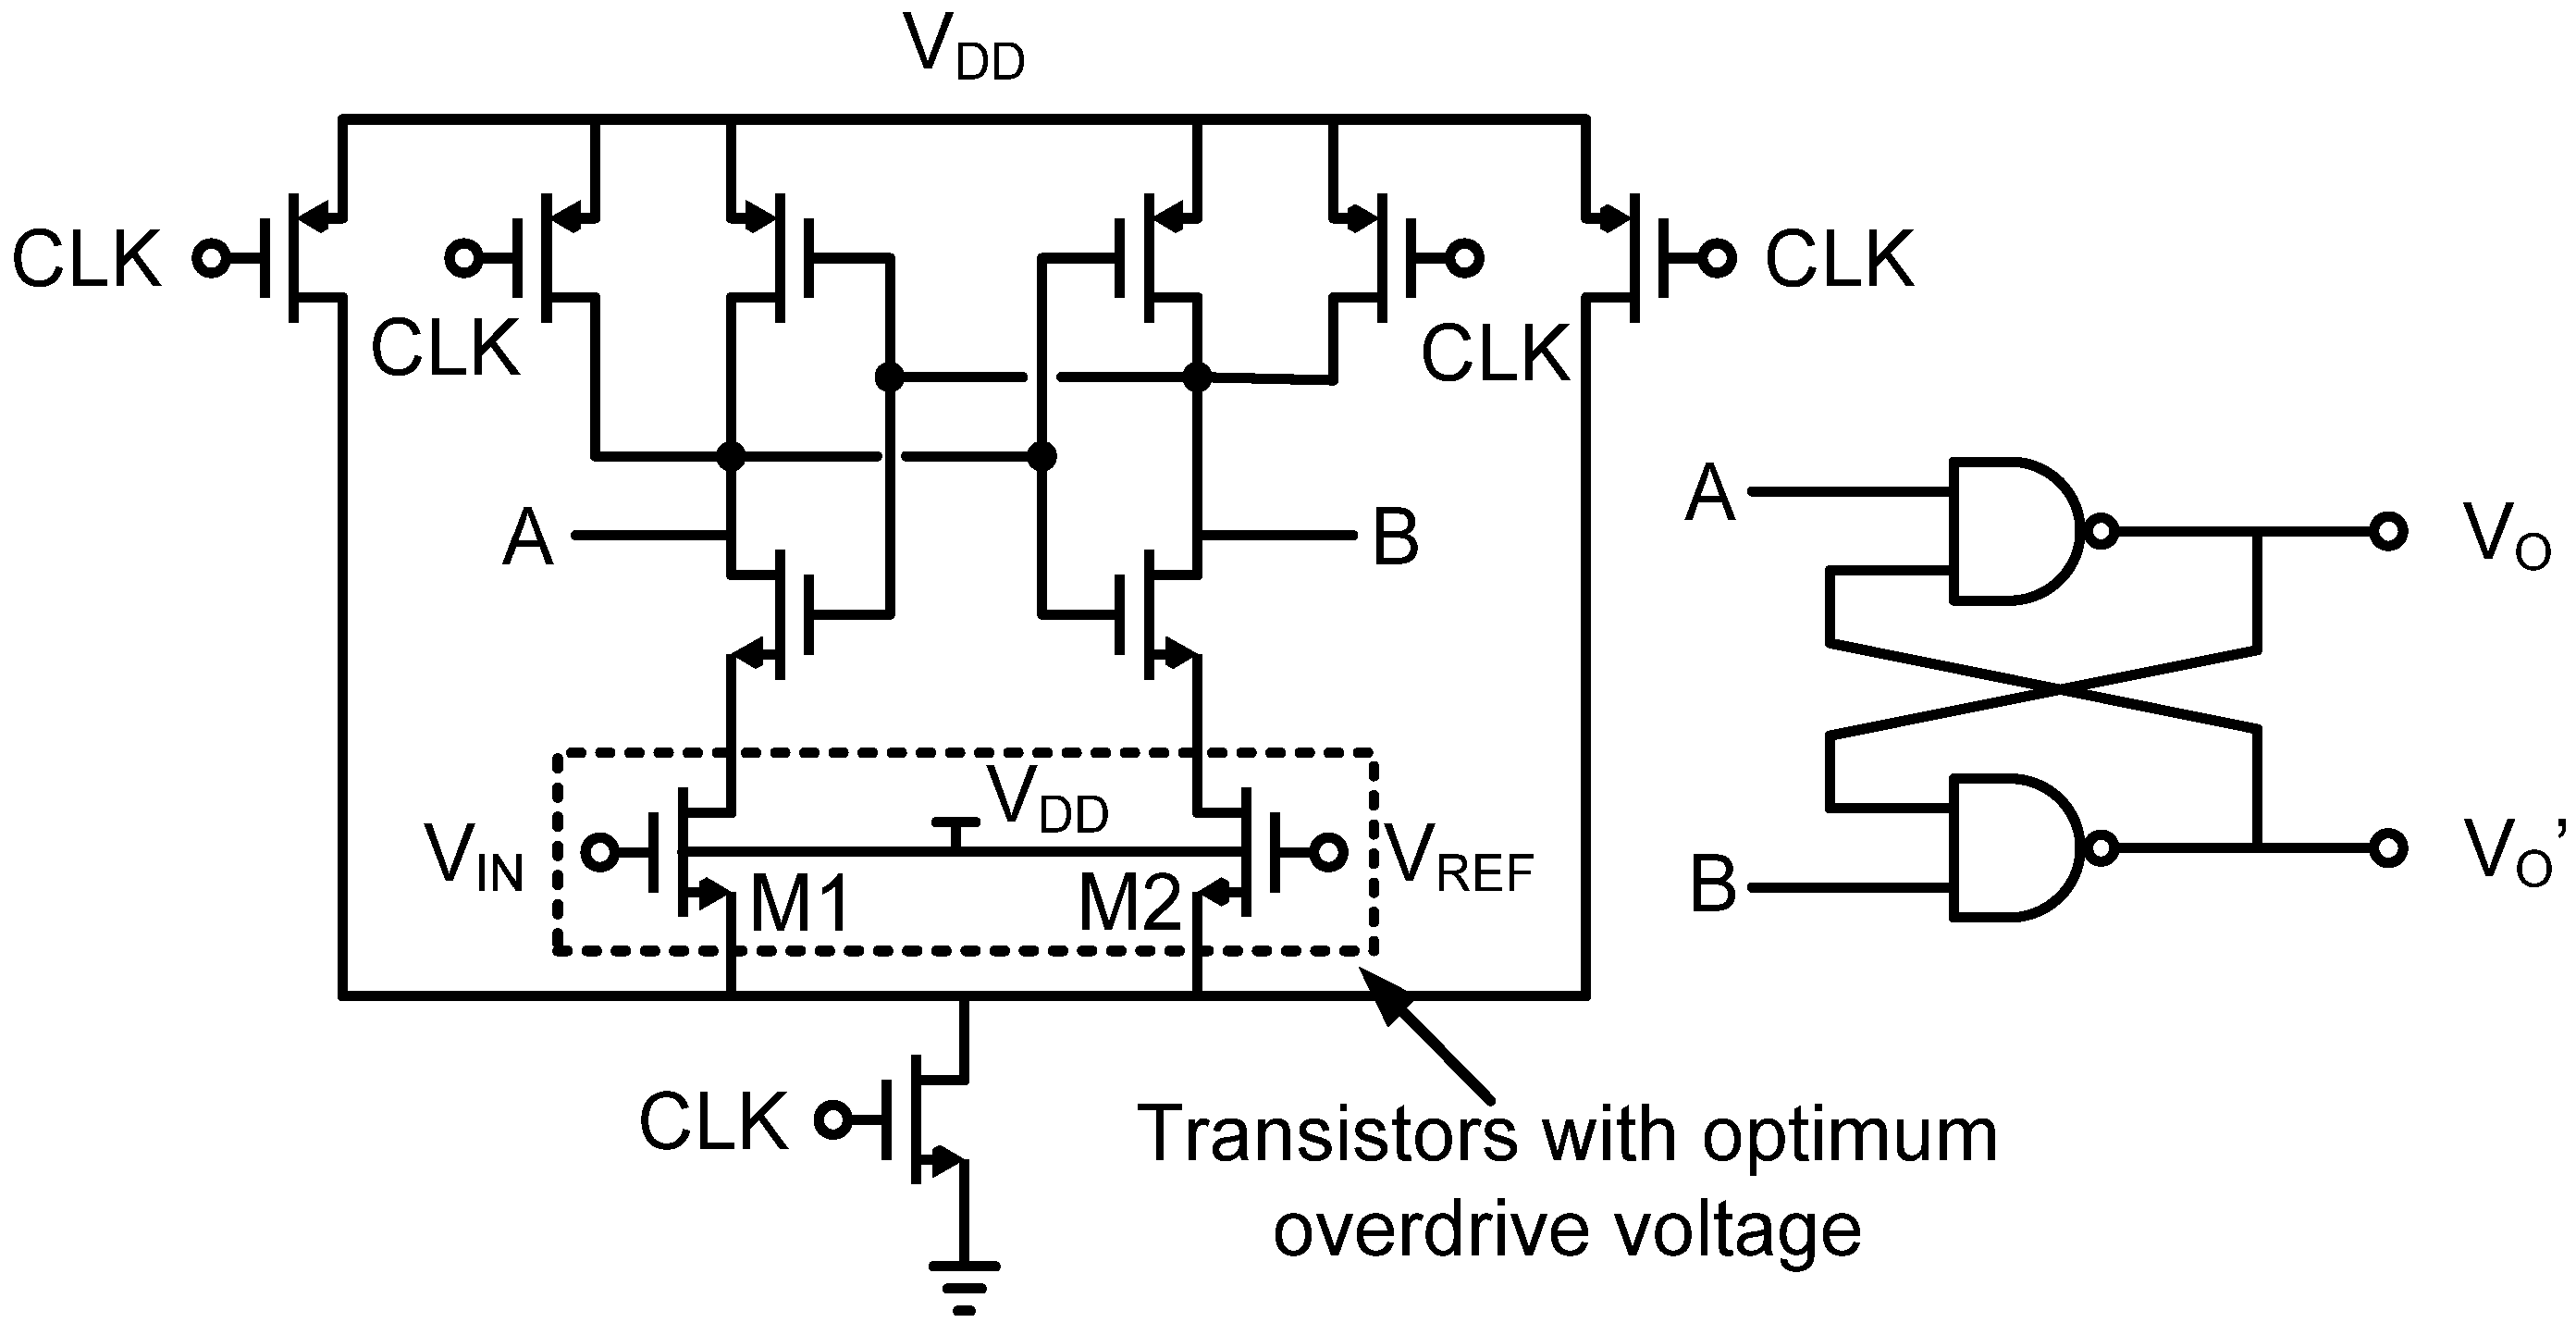 Electronics Free Full Text Ultra Low Power Design And Hardware Circuit With Cmos Inverter Ic Electronic Projects Circuits 06 00067 G004 Figure 4 Schematic